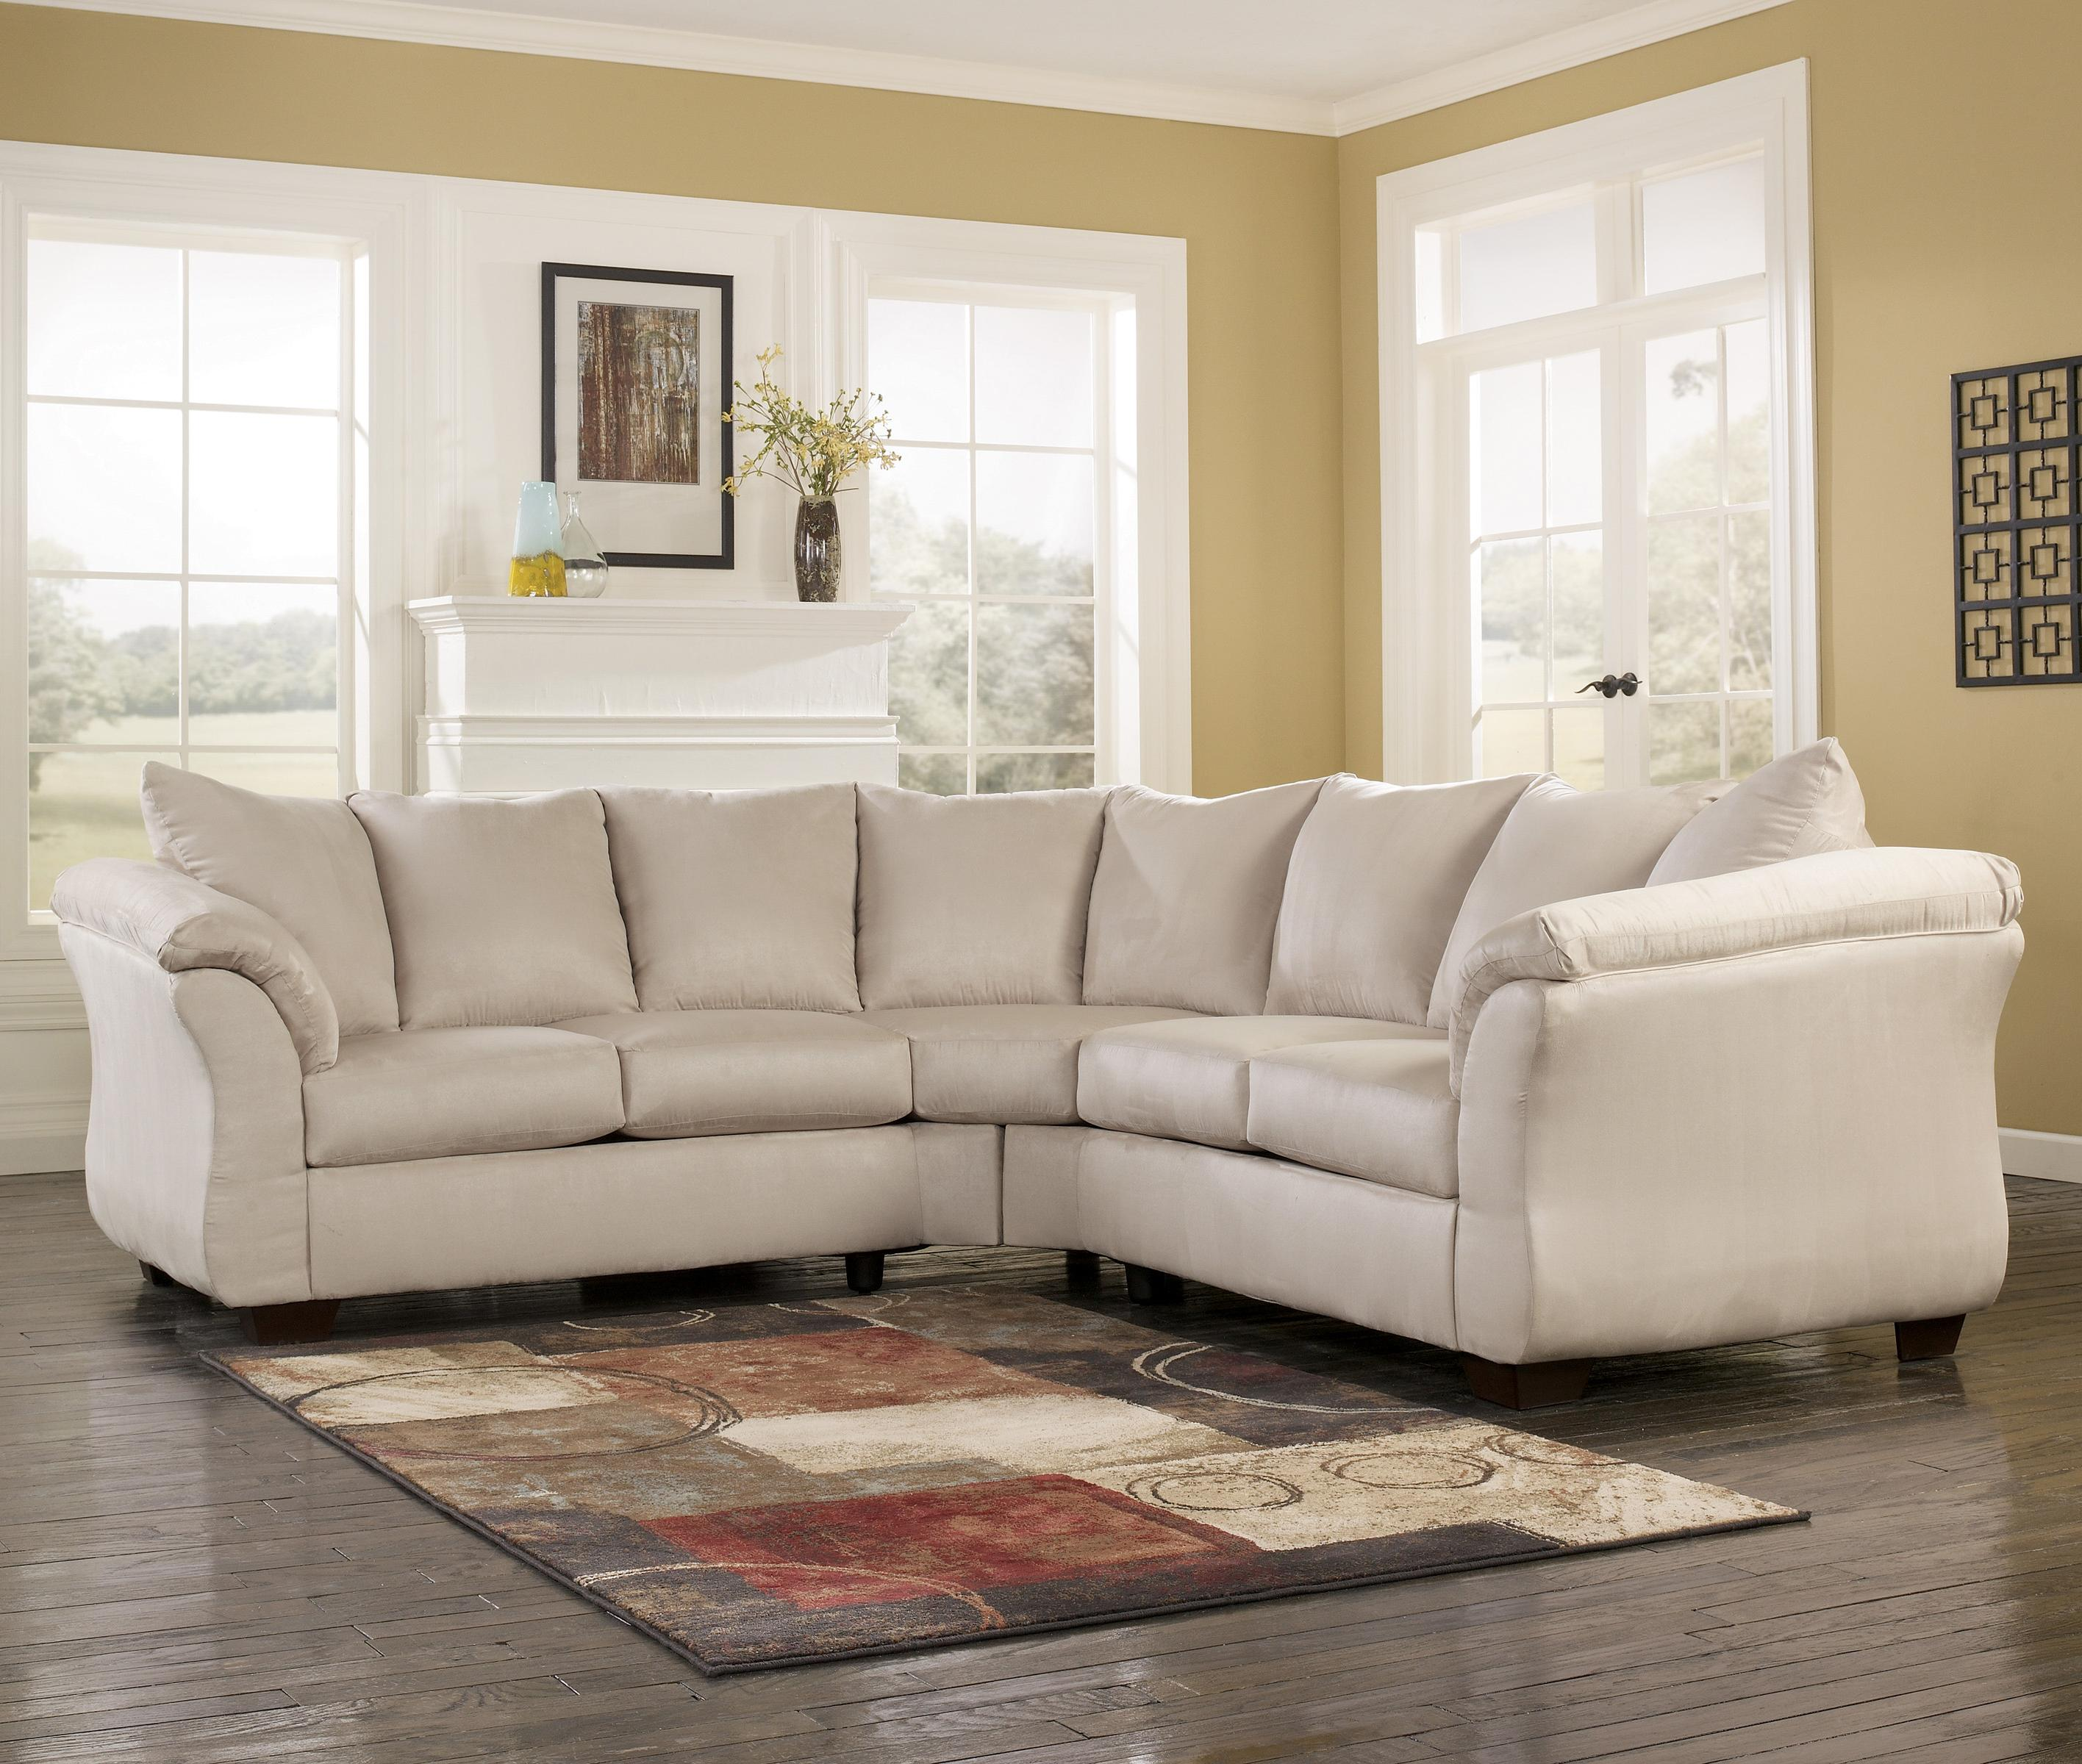 Signature Design by Ashley Darcy - Stone Sectional Sofa - Item Number: 7500055+7500056